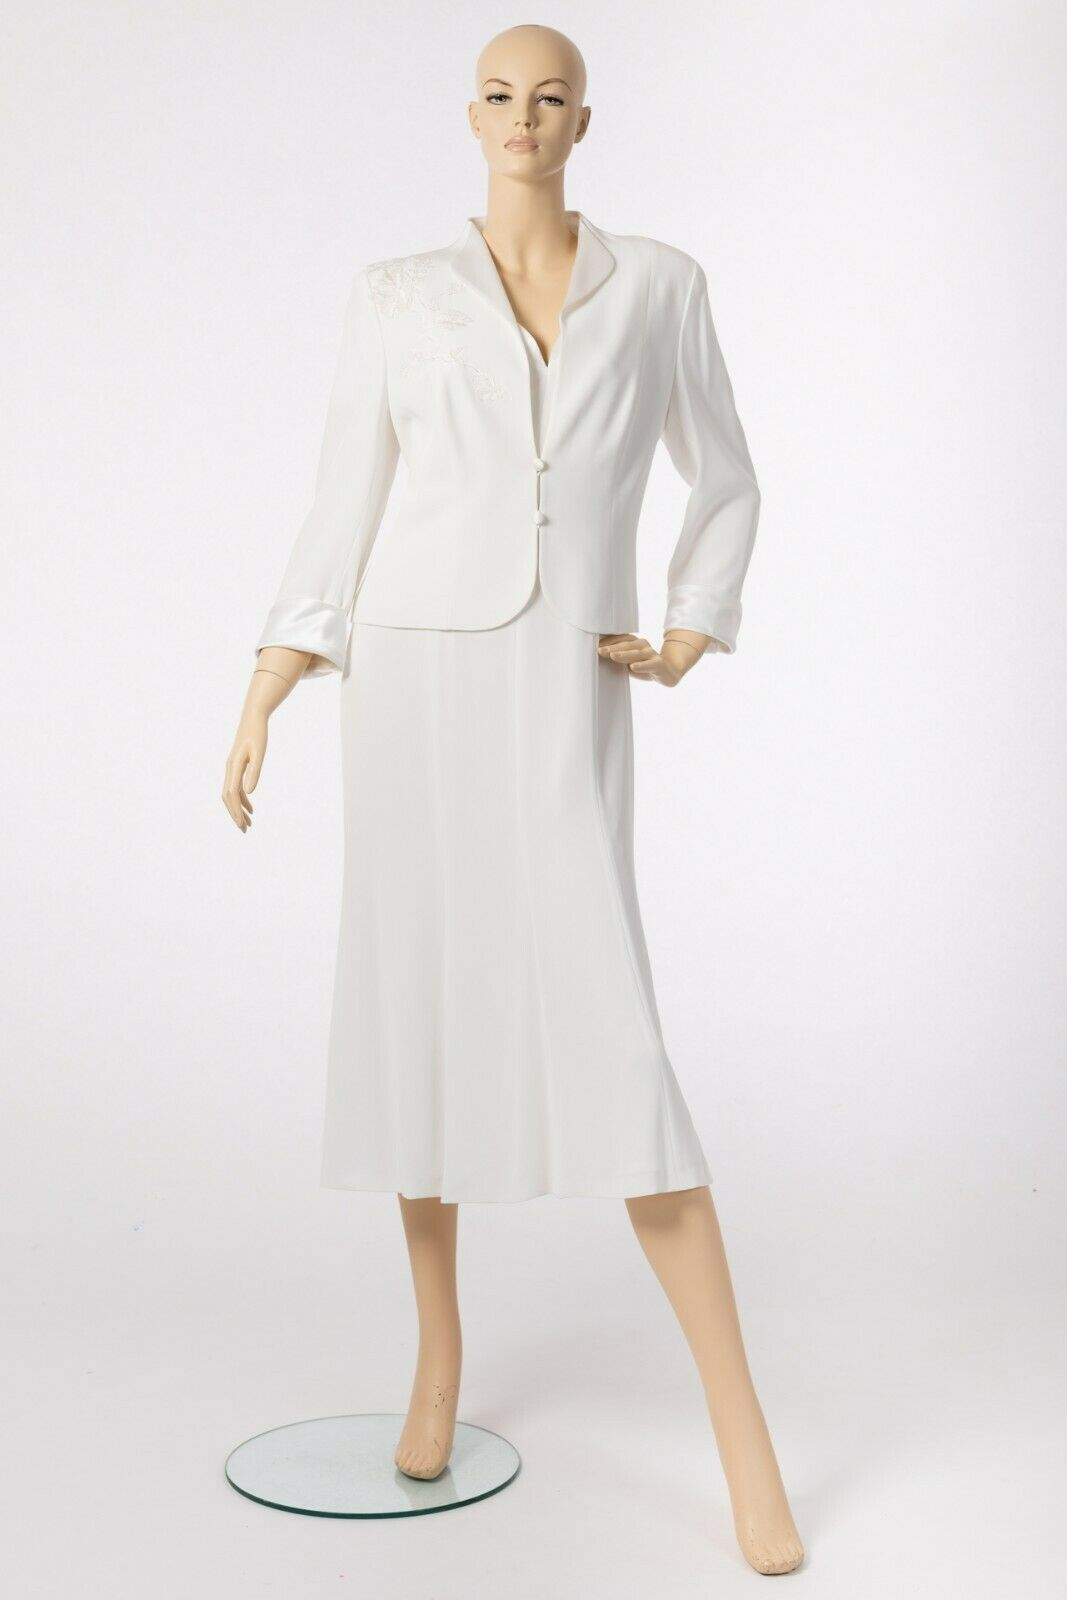 Condici Dress & Suit Mother of The Bride Wedding Outfit Size 14,16,18